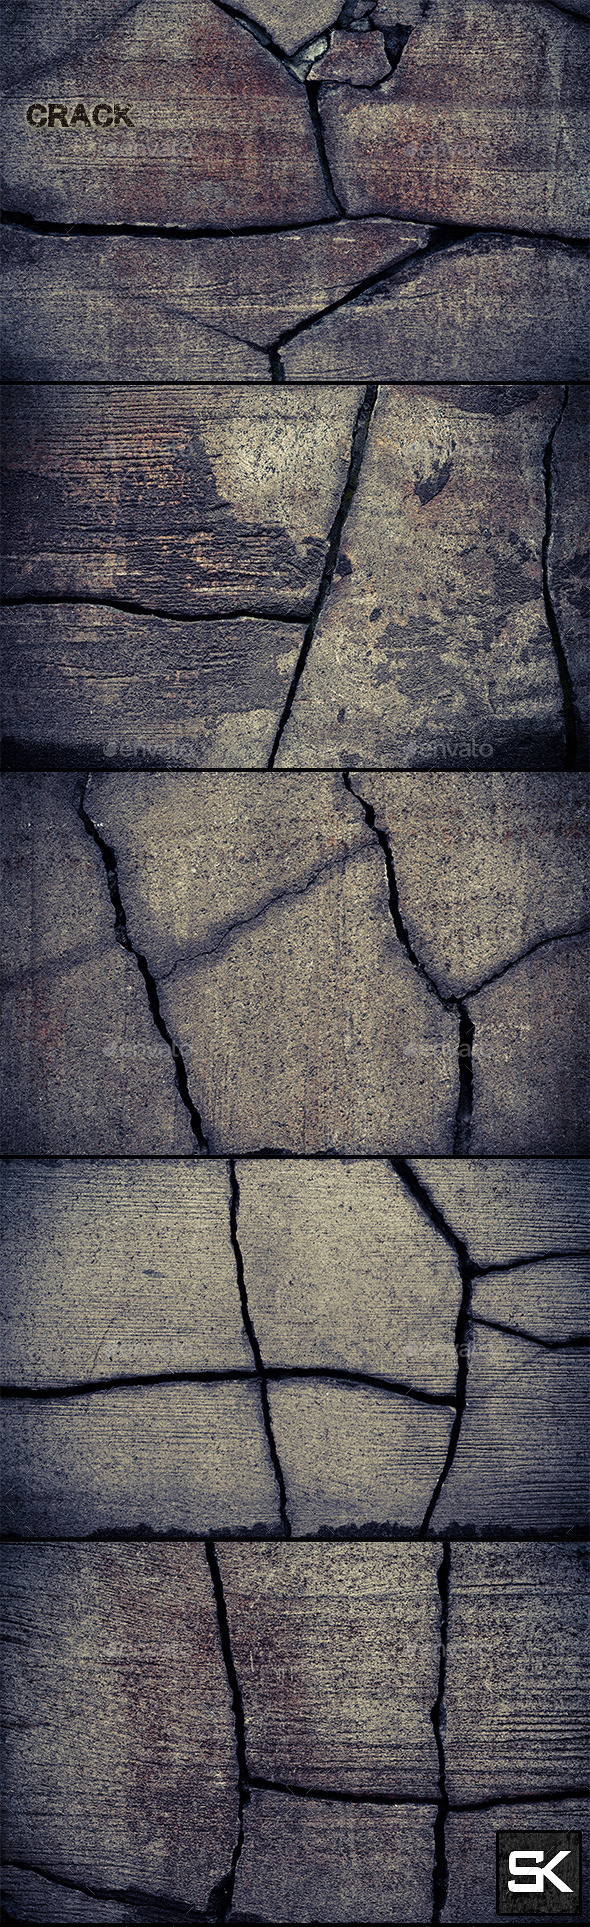 GraphicRiver Crack In The Stone 2 10801819